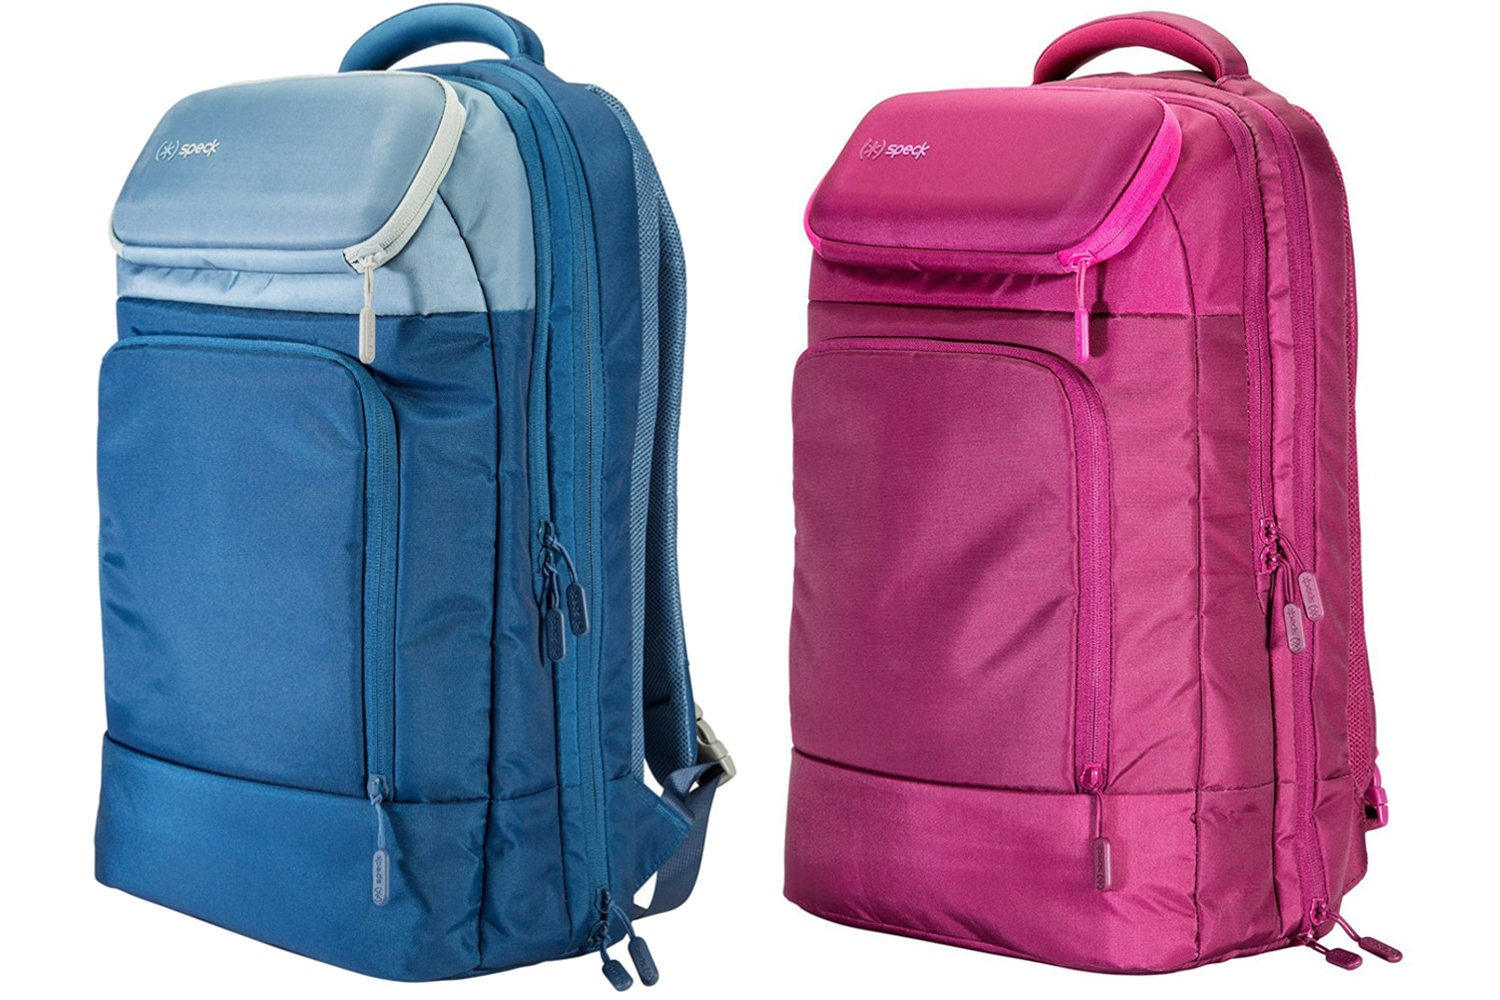 Speck MightyPack Backpack